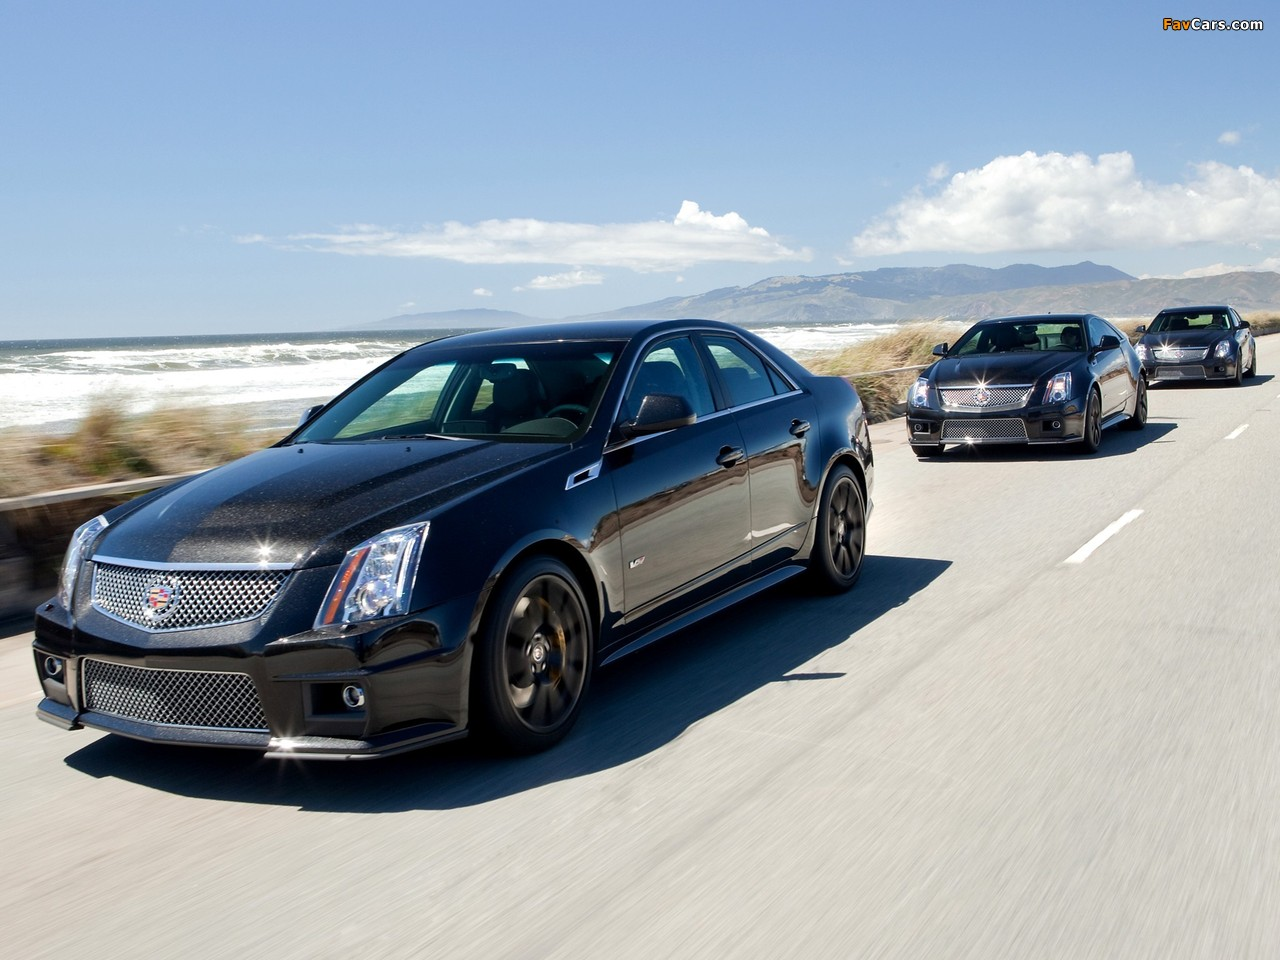 Cadillac CTS images (1280 x 960)